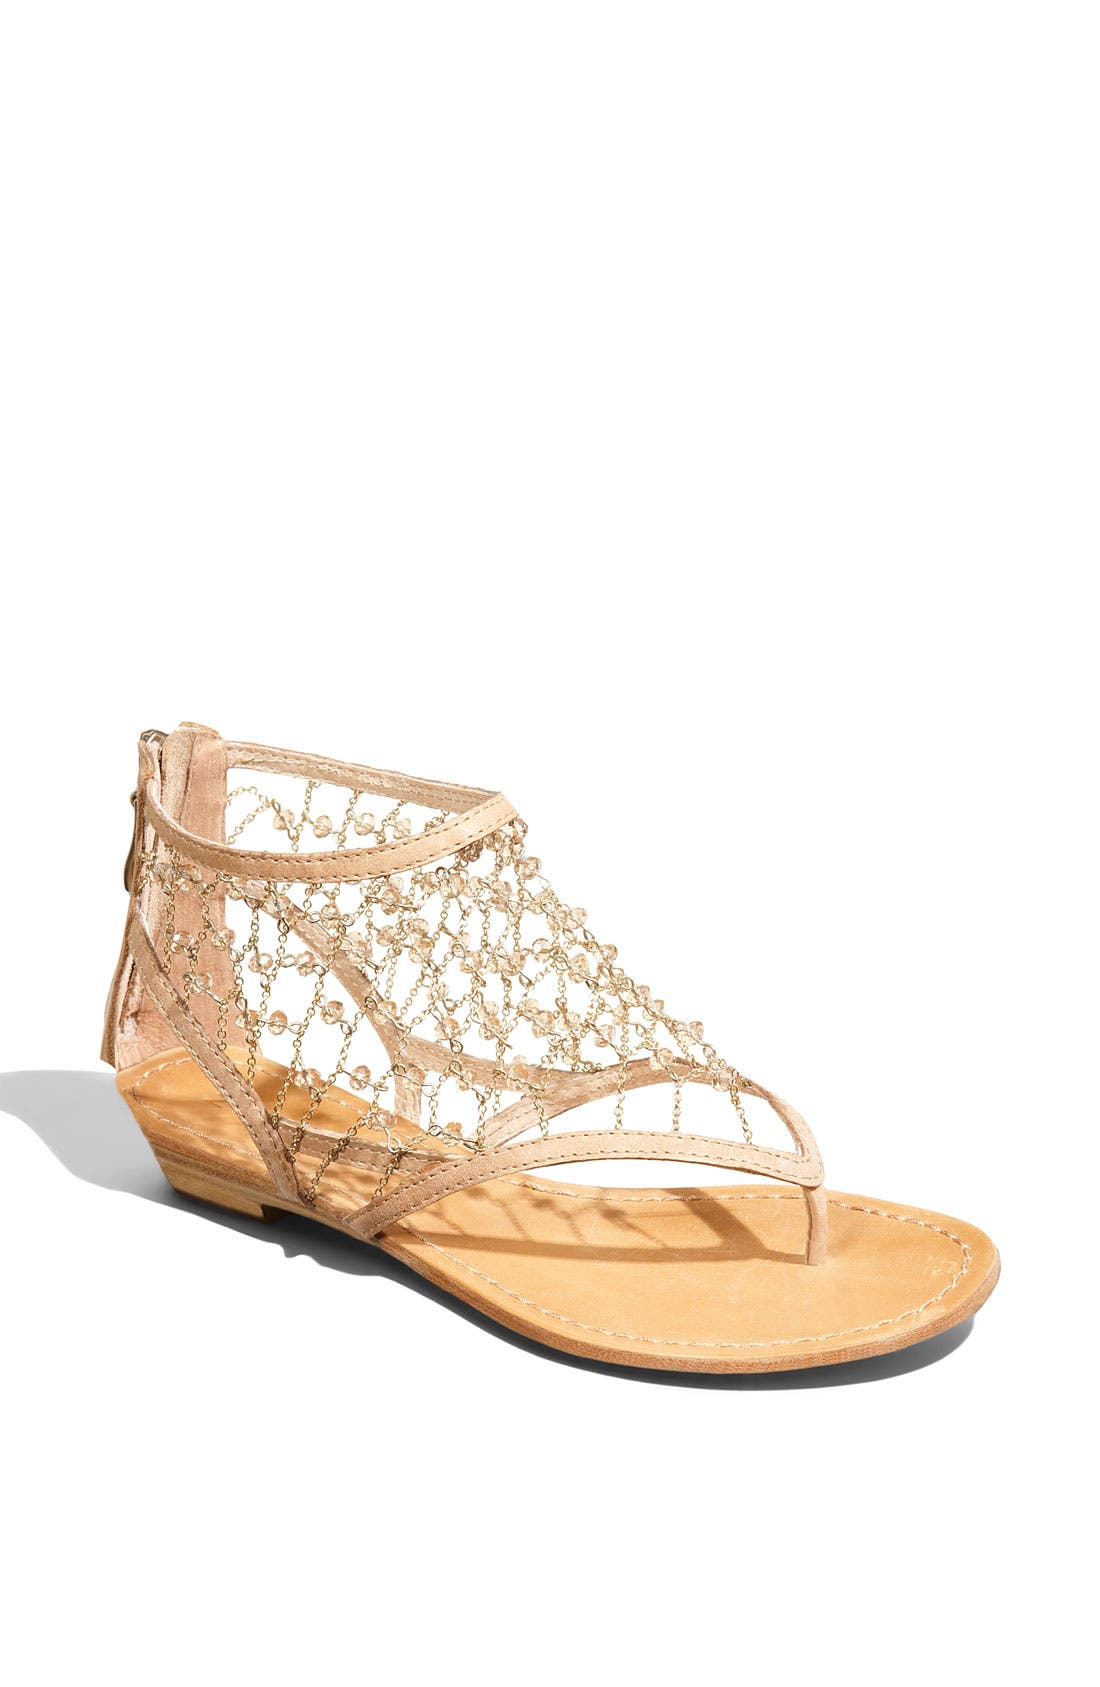 Alternate Image 1 Selected - ZiGi girl 'Klive' Sandal